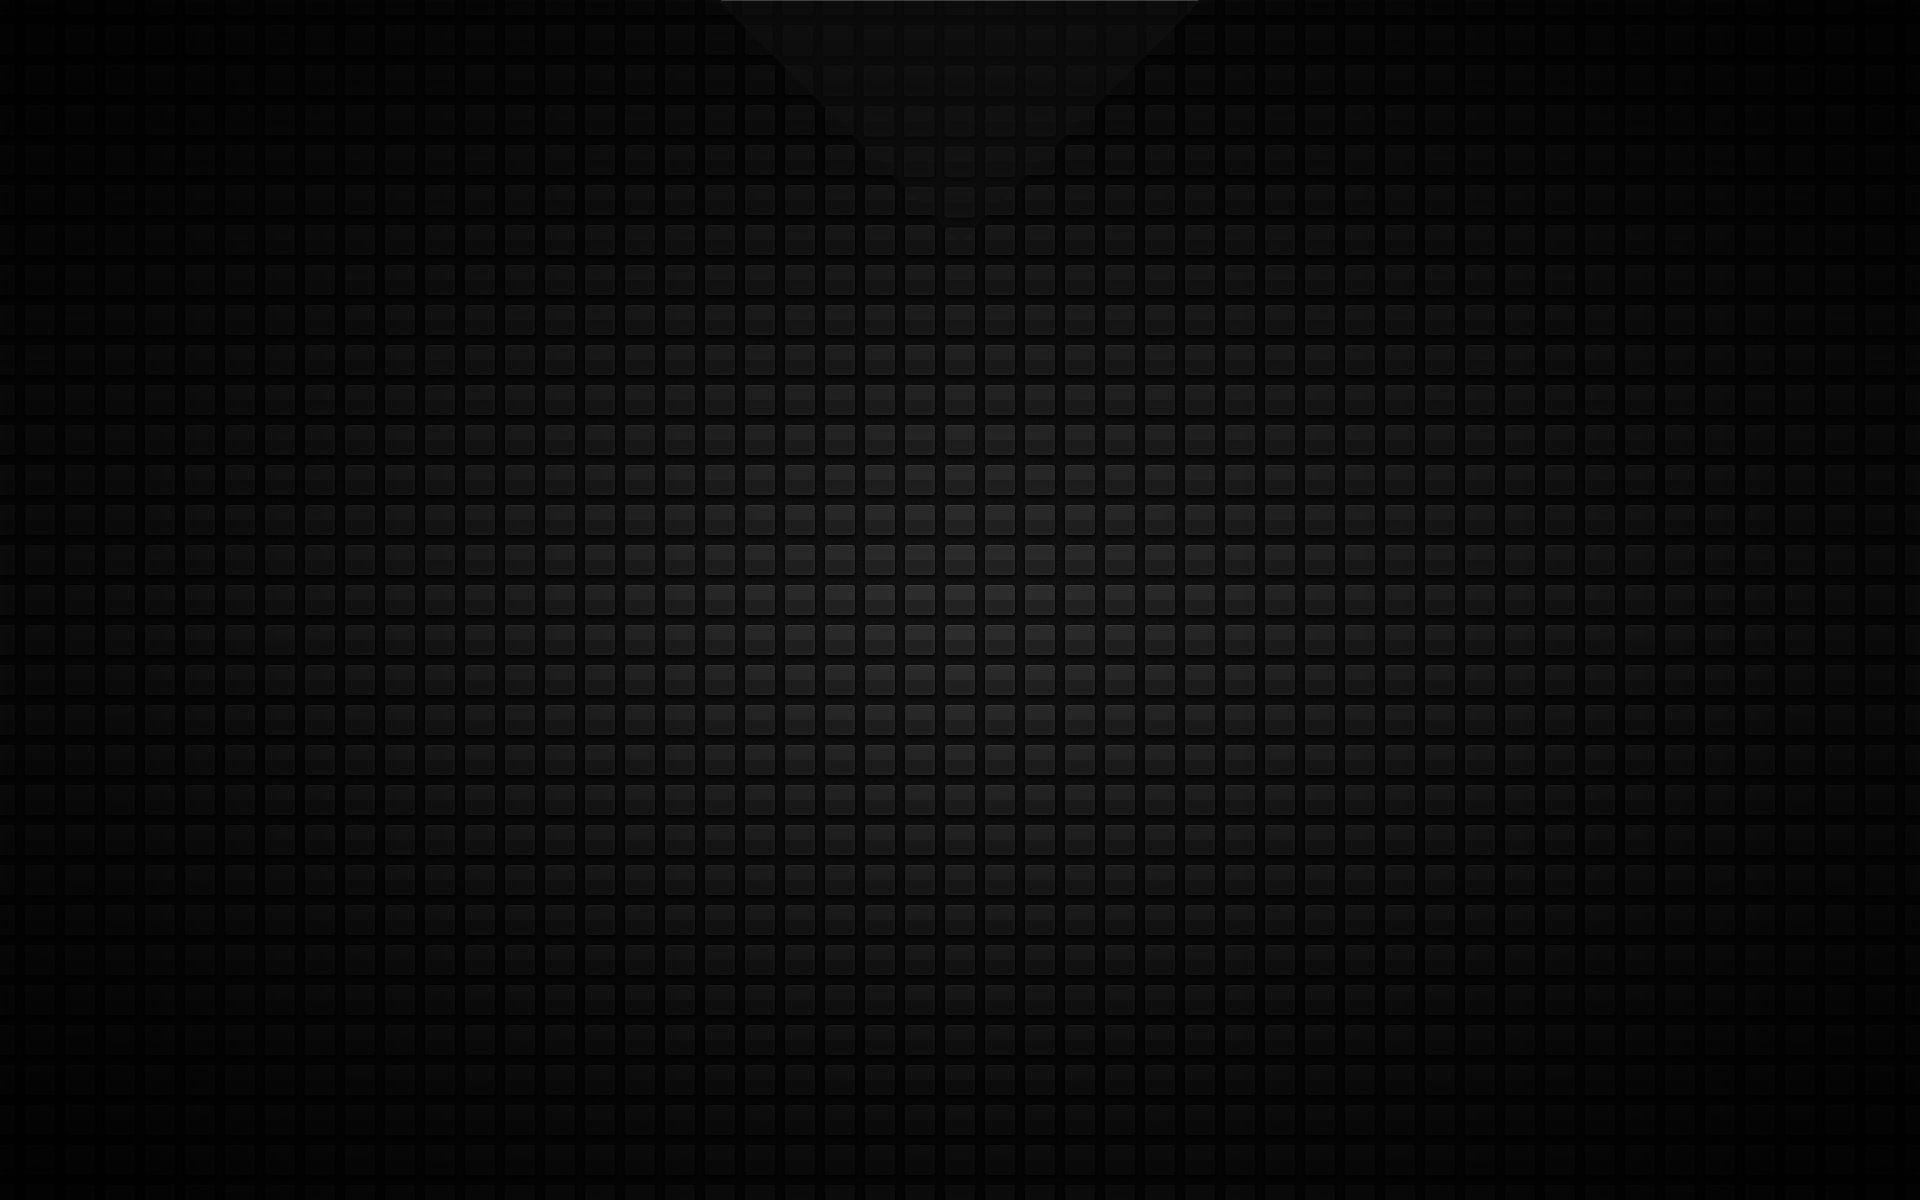 1920x1200 Dark grey square pattern Wallpaper #5688